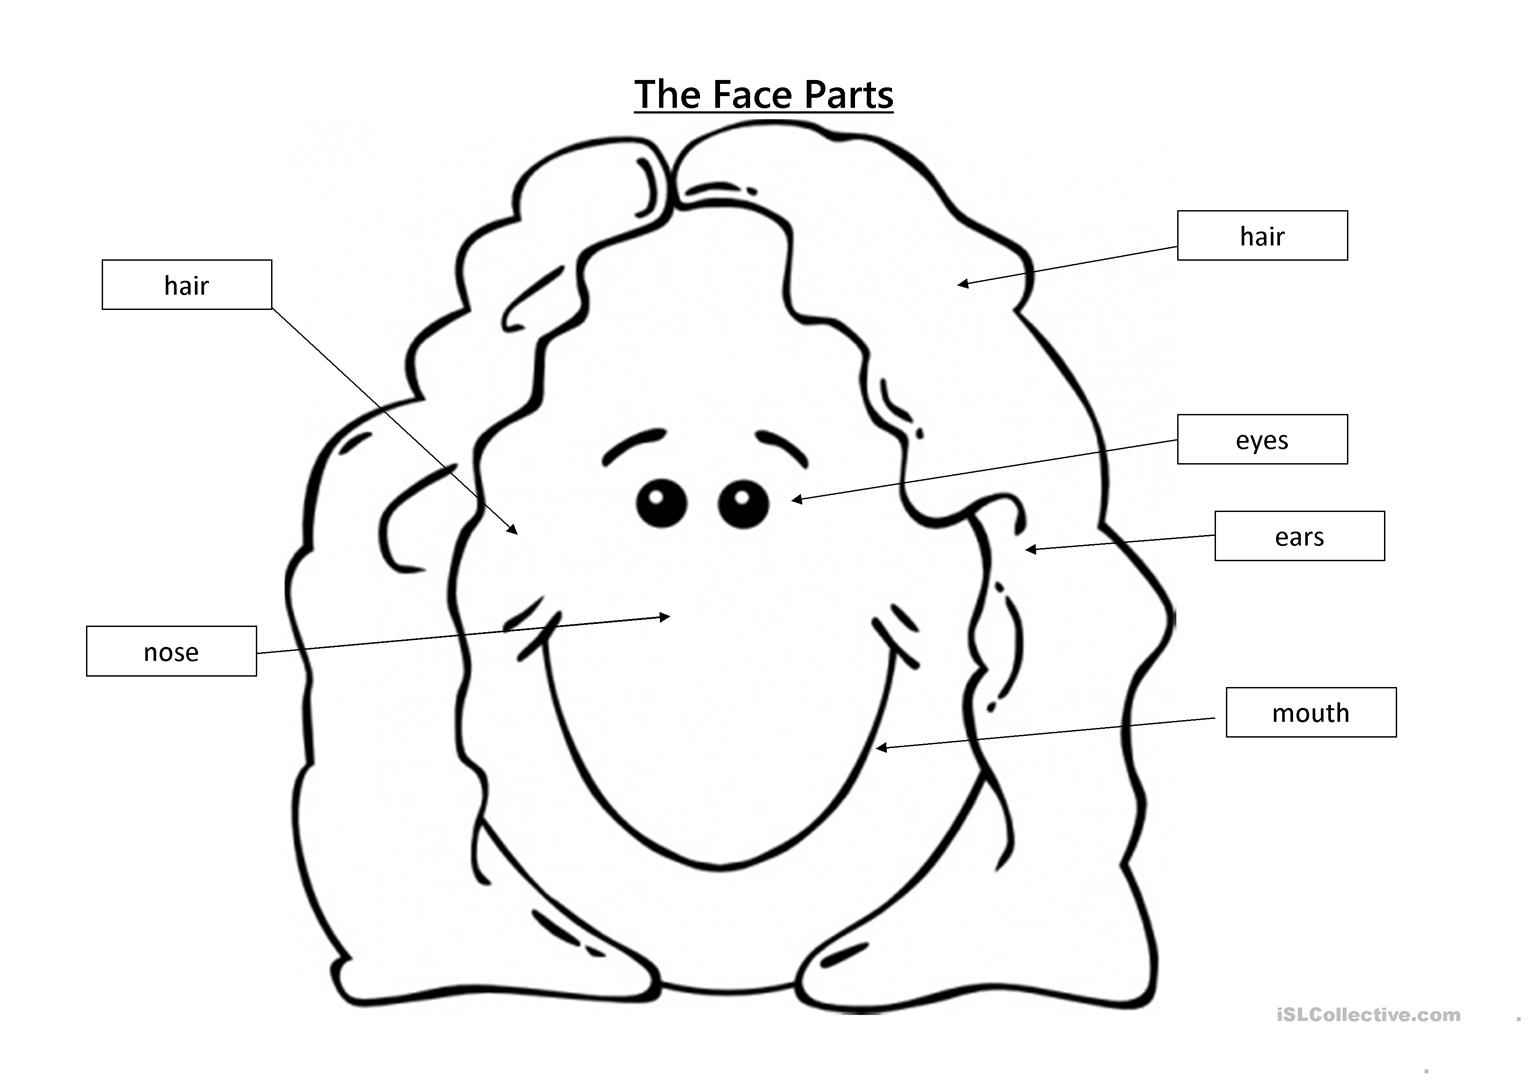 Parts Of The Face Worksheet Face Body Parts Worksheets